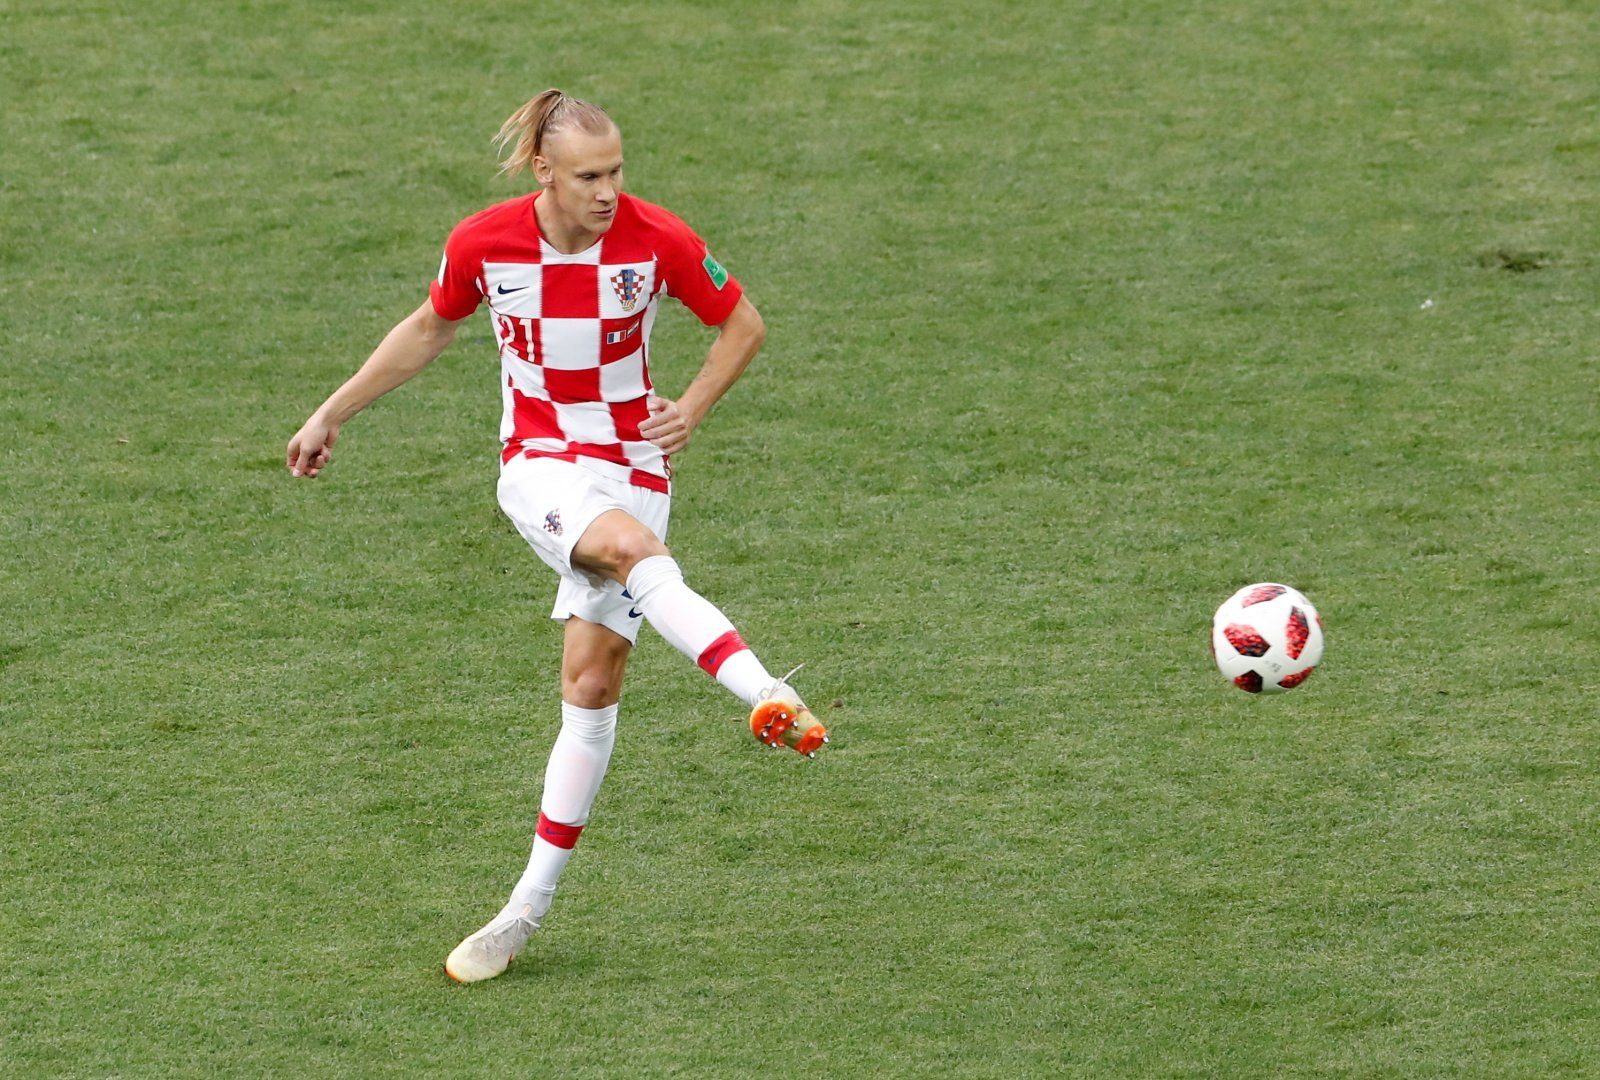 For just £22m, Liverpool must seal Domagoj Vida deal